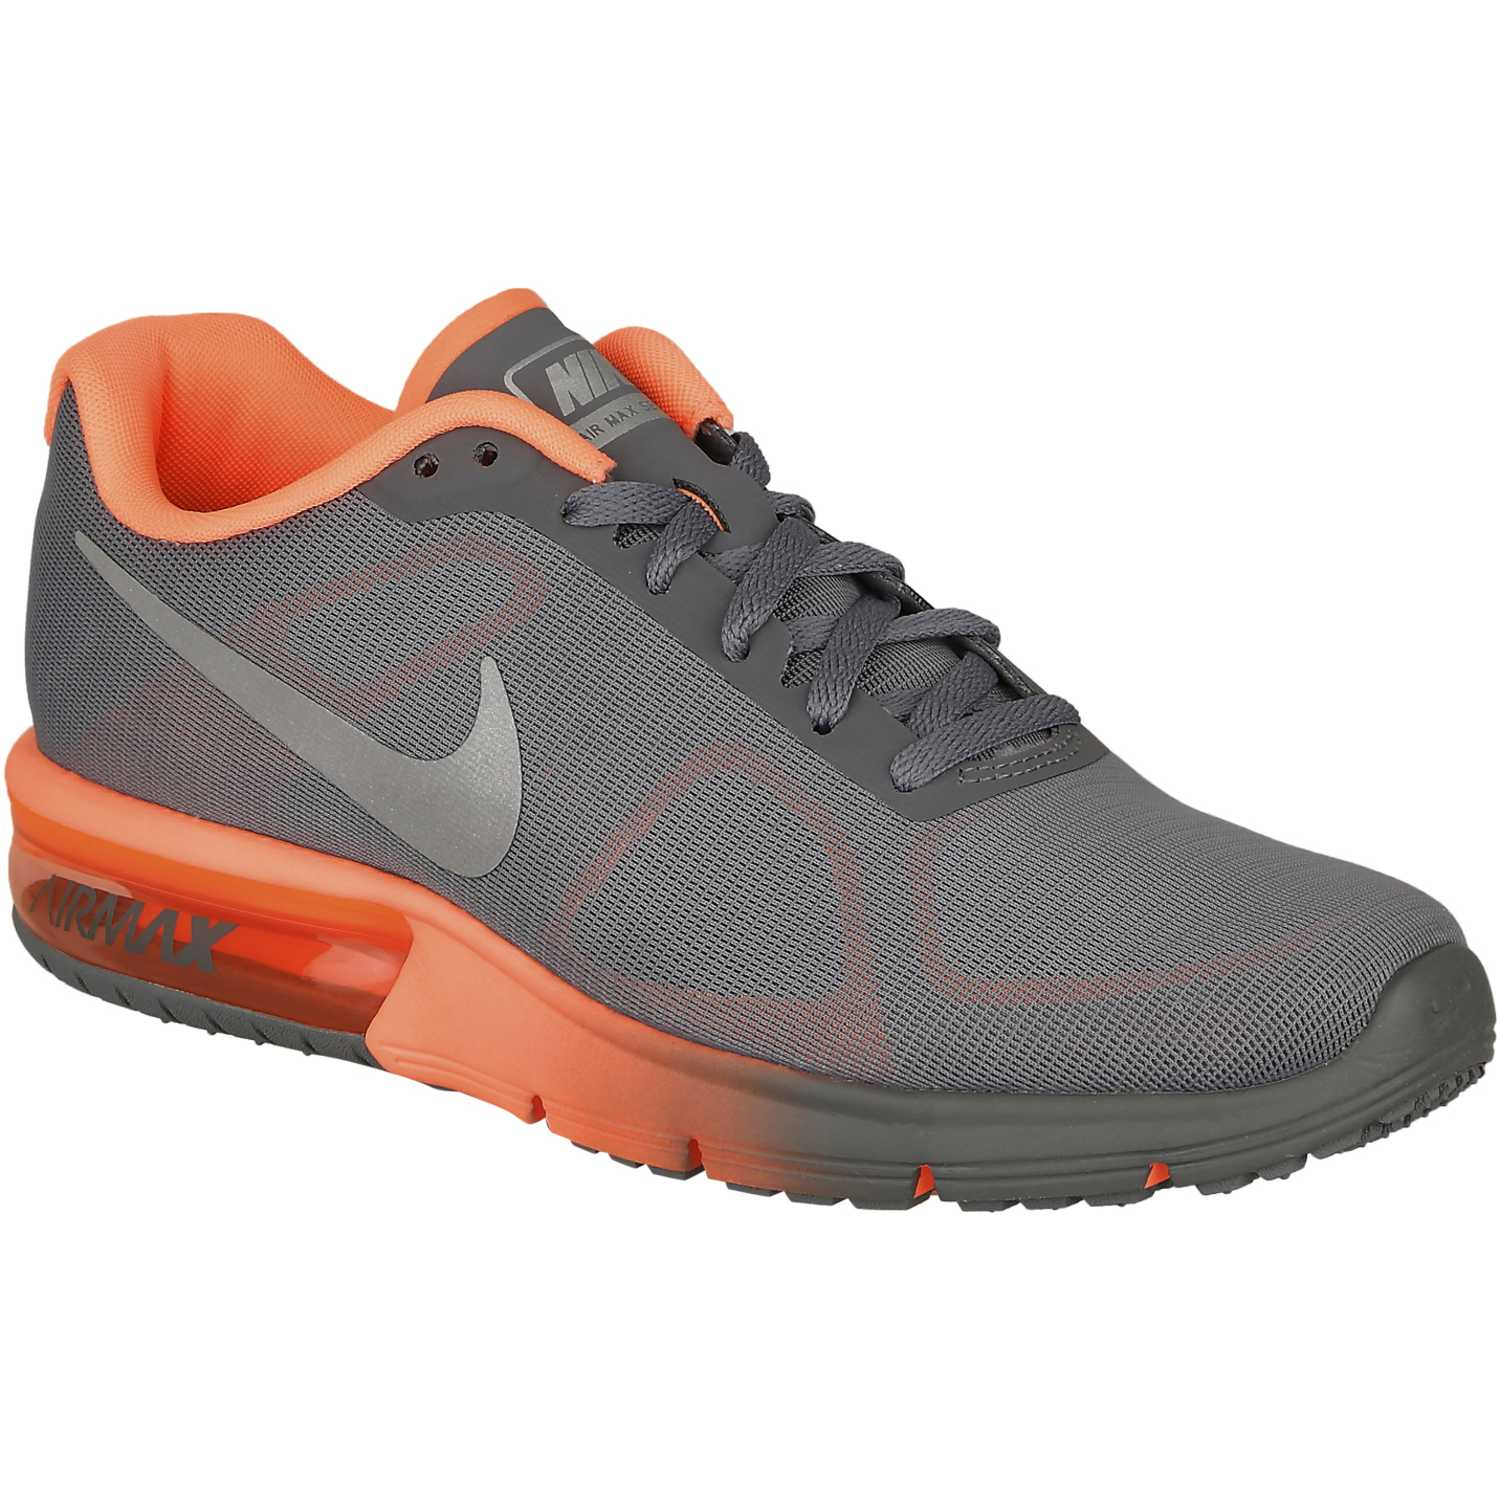 Zapatilla Mujer de Mujer Zapatilla Nike Gris / Coral wmns air max sequent 1d32b2